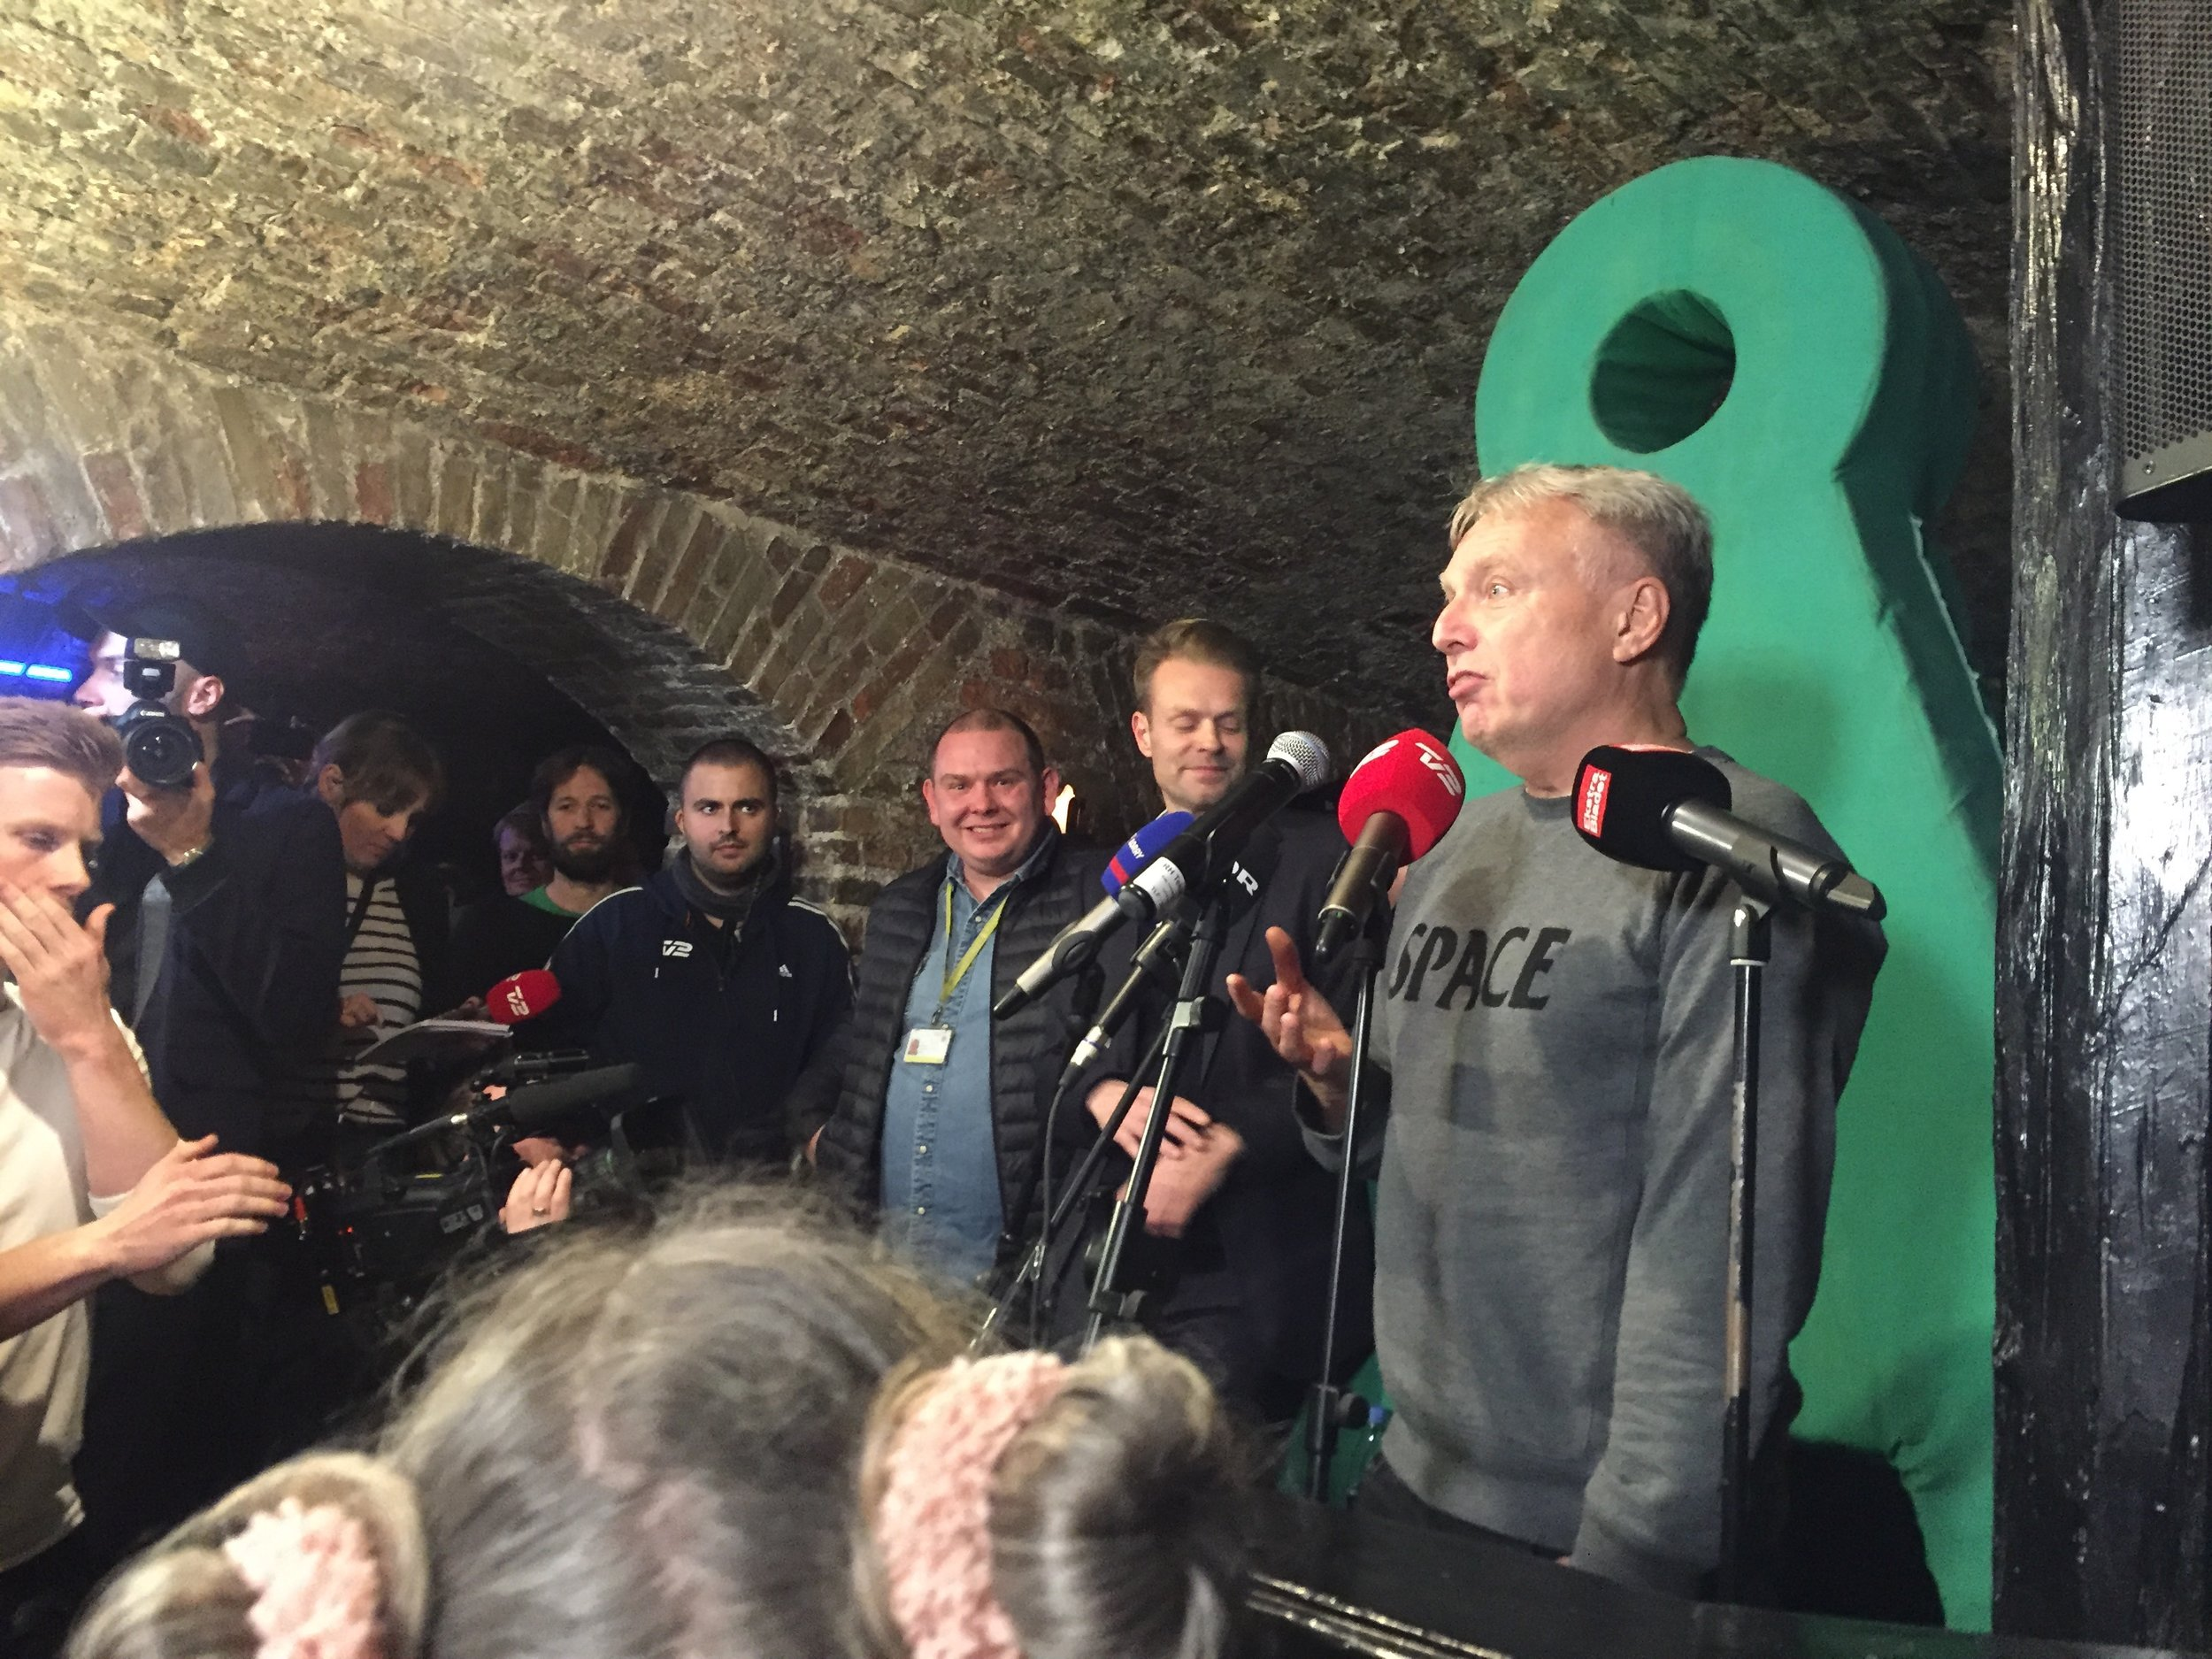 """The very proud political leader gives a short speech at the """"infamous"""" election party"""